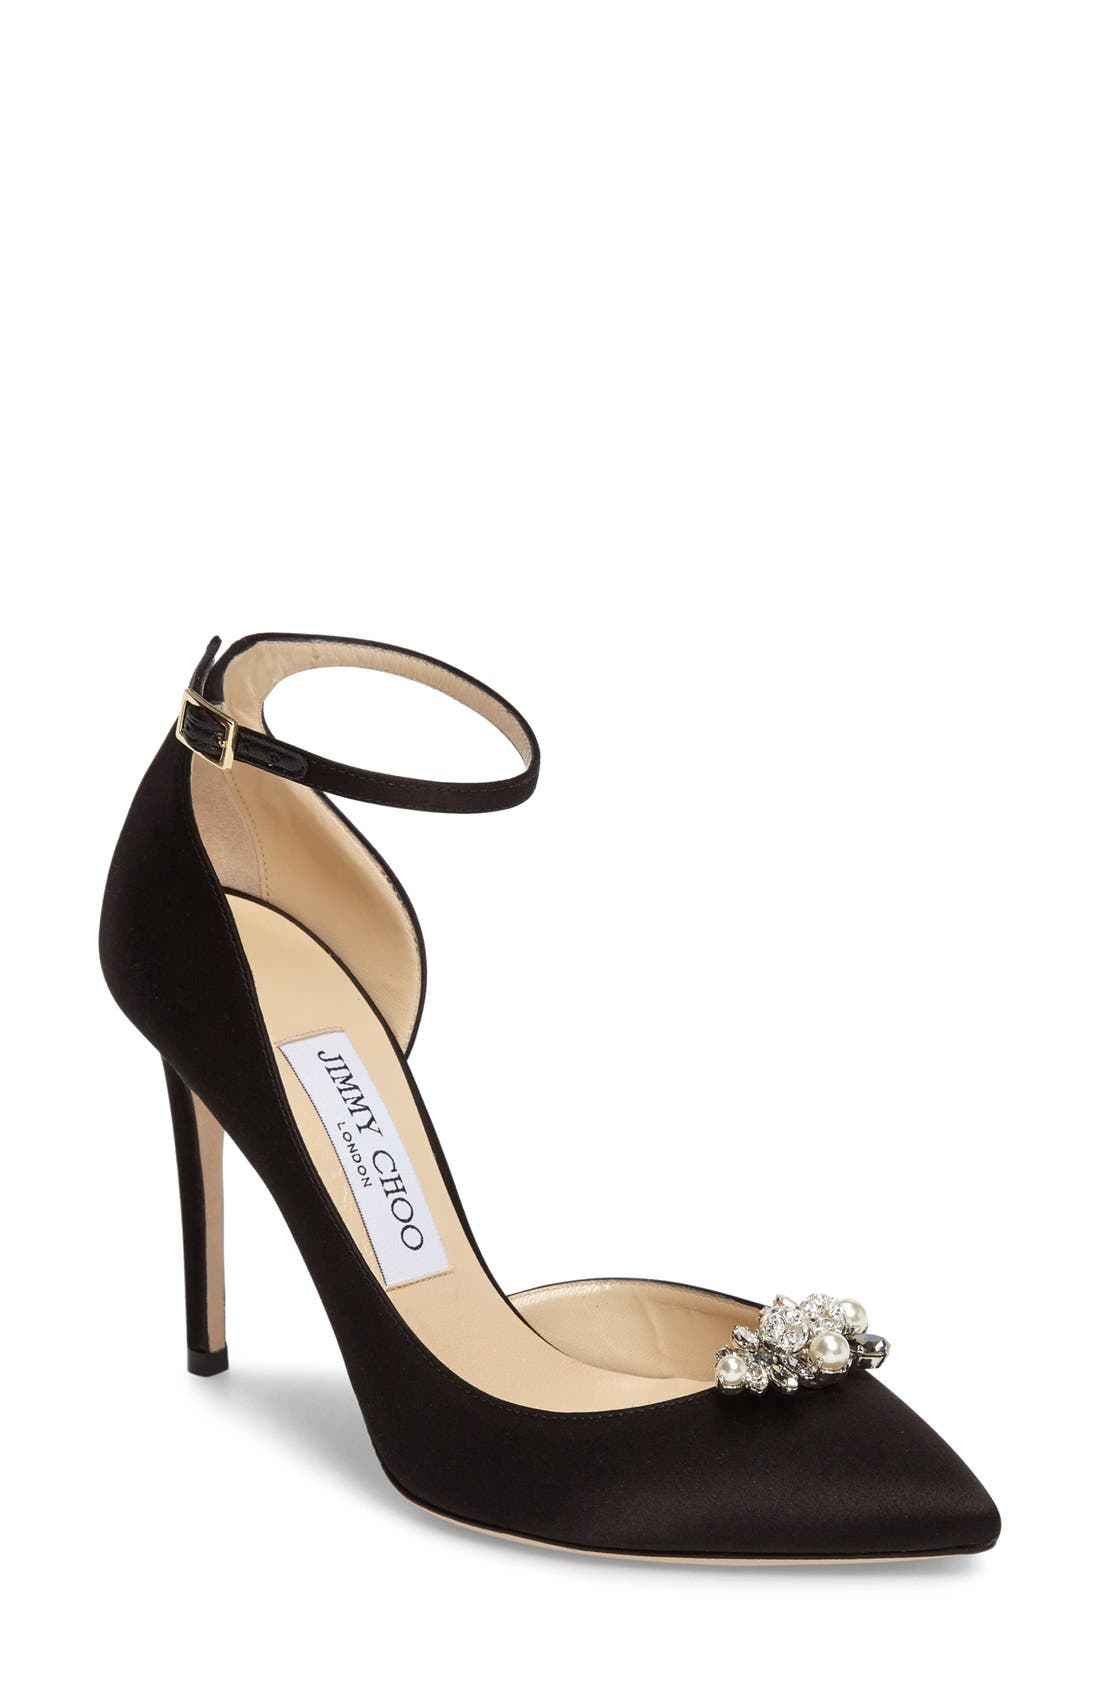 Main Image - Jimmy Choo Rose d'Orsay Pump with Jeweled Clip (Women)